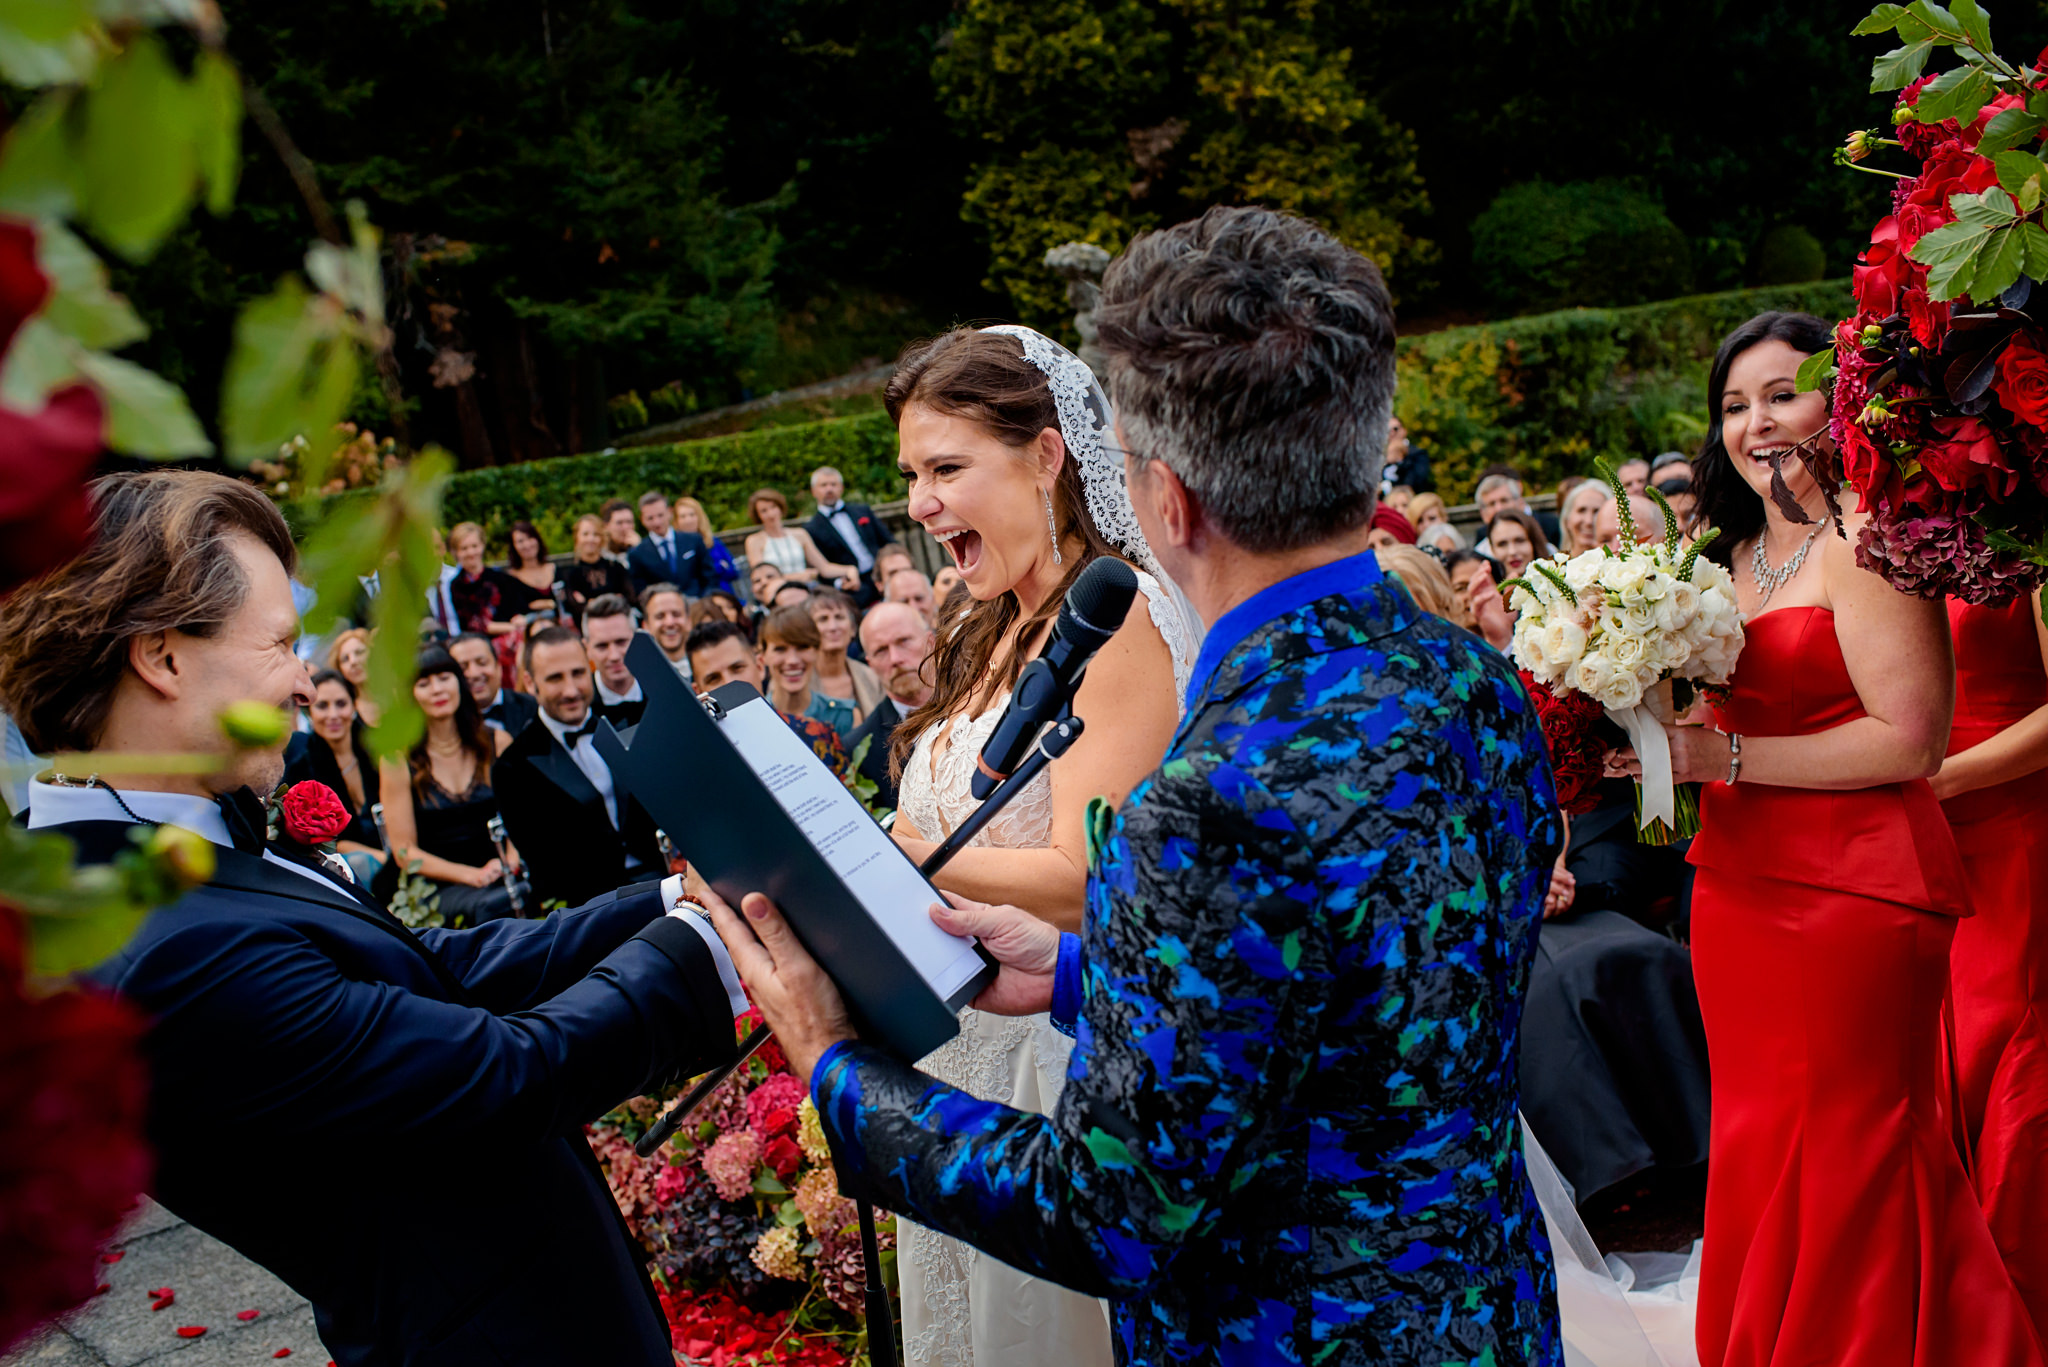 Melissa and Carlo's wedding in Lake Como, Italy.